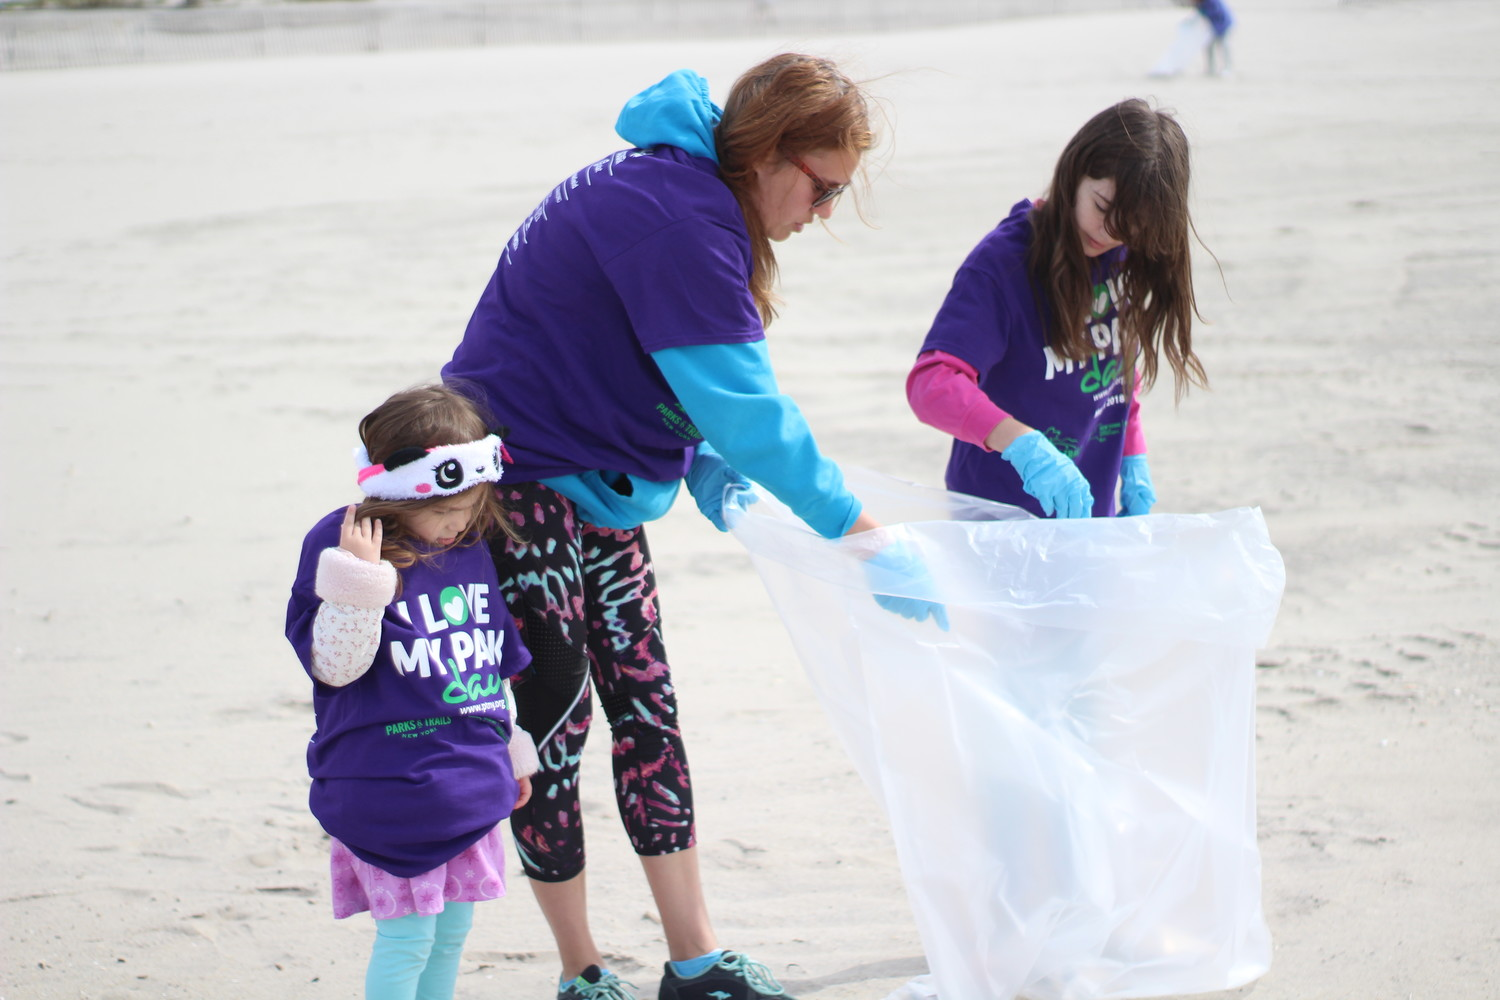 Cathy Kassimatis, of Wantagh, helps her 10-year-old daughter Emily pick up litter at Jones Beach while her other daughter Jeana, 3, looks for more trash.